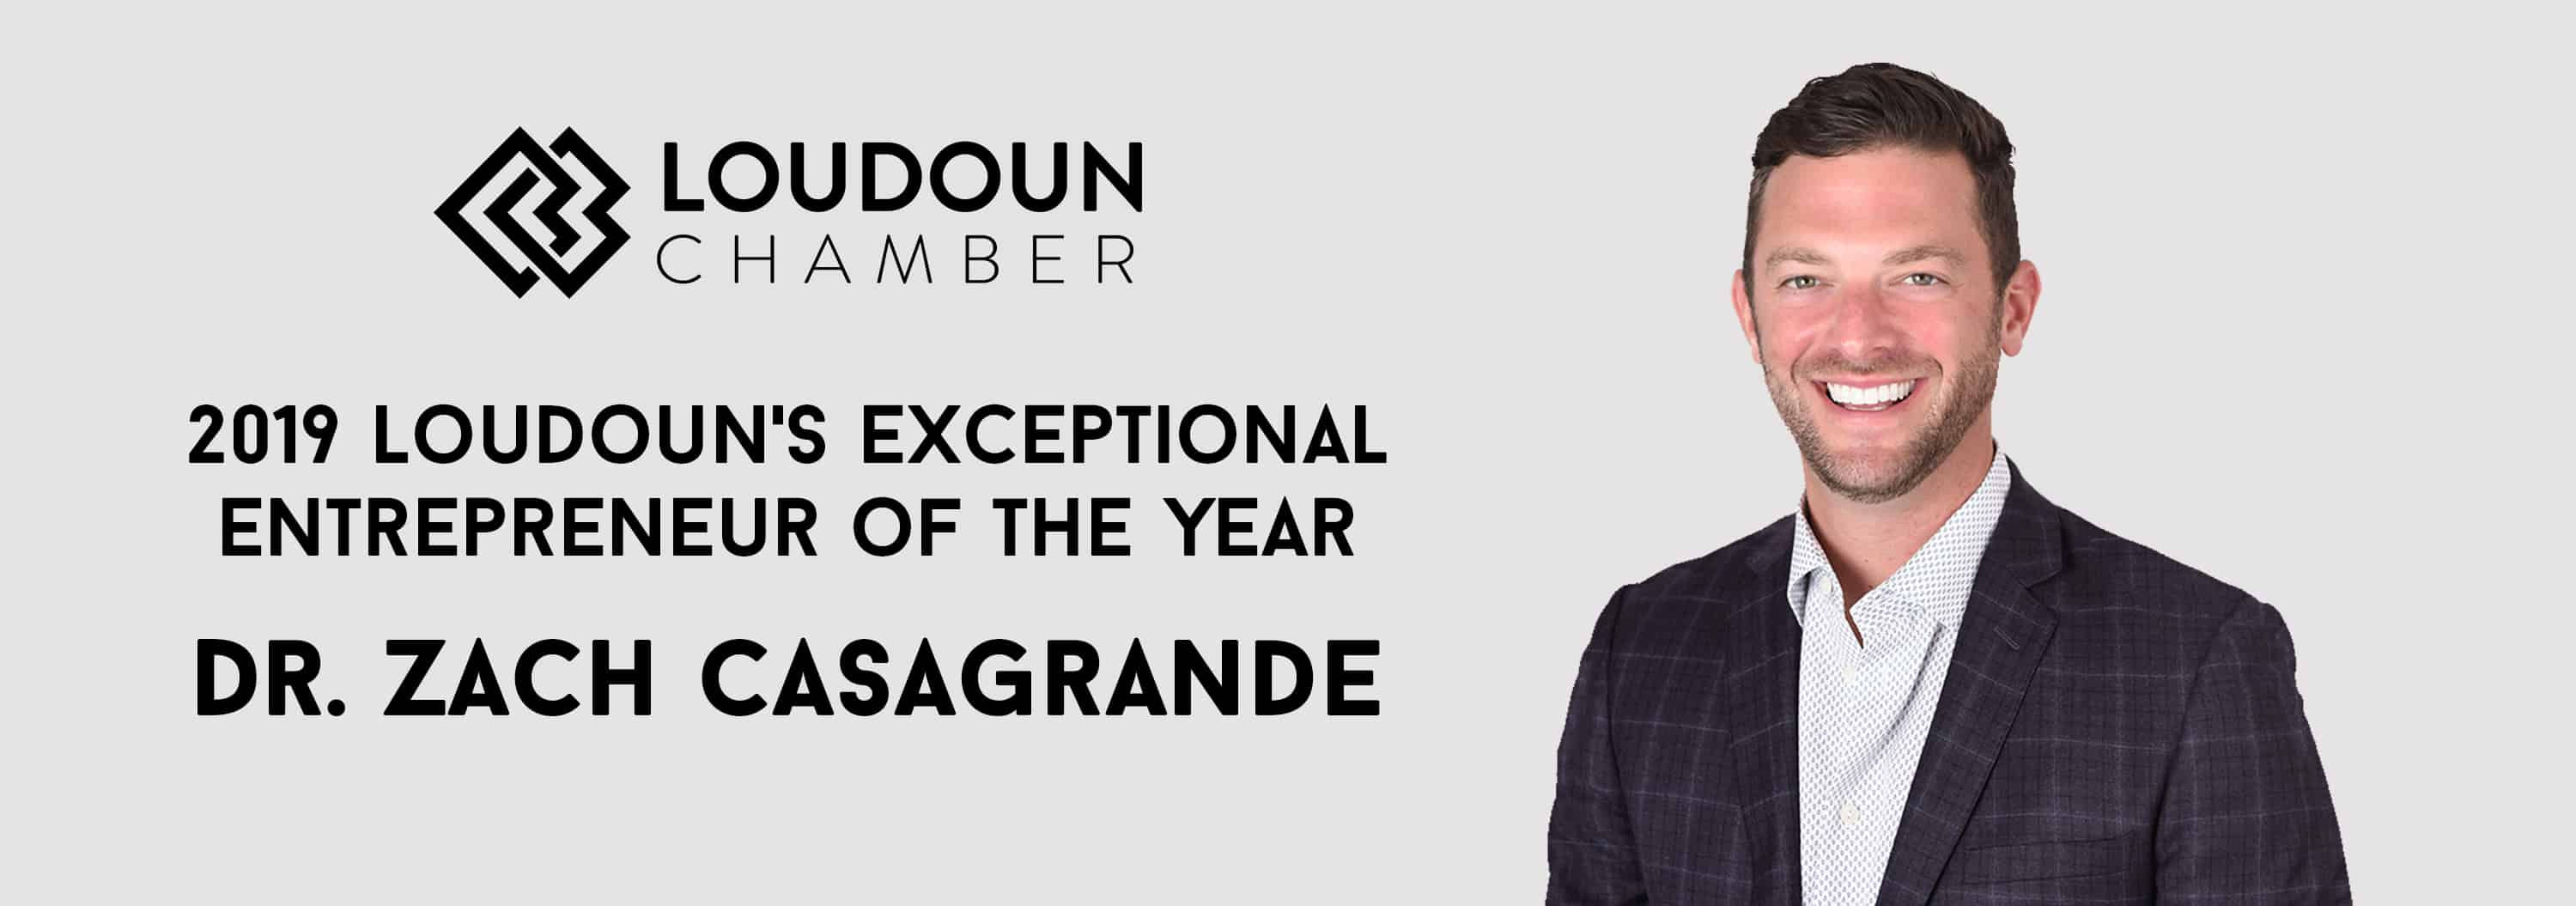 Dr. Zach Casagrande Named 2019 Entrepreneur of the Year by Loudoun County Chamber of Commerce